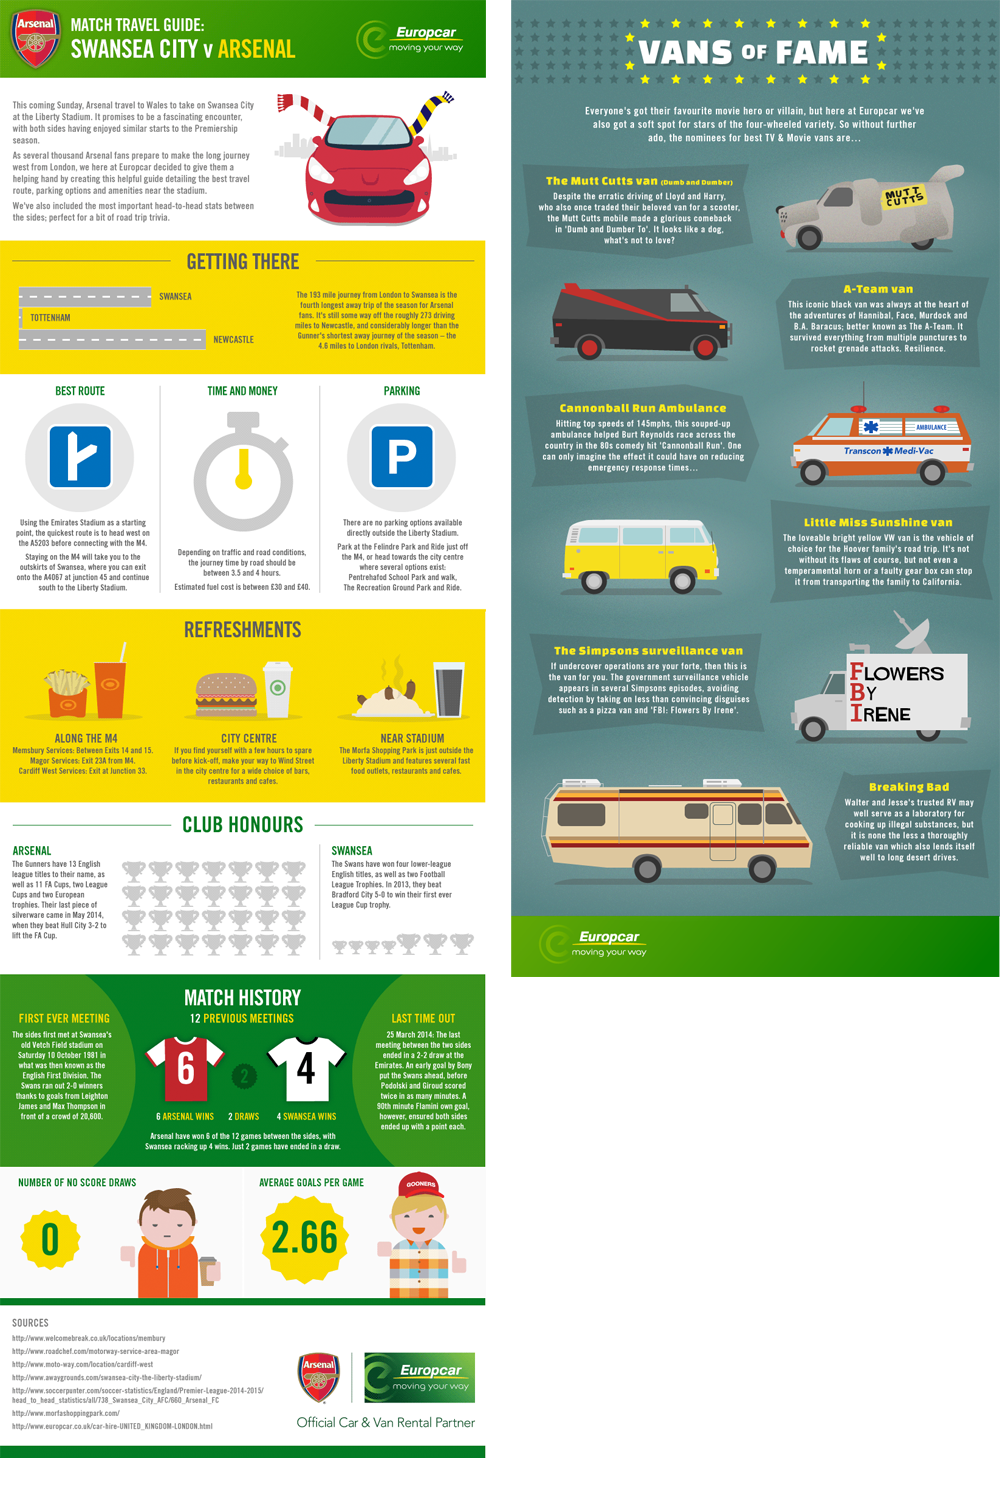 A partnership with Arsenal FC meant outreaching to their fans sites weekly with timely details of the next away game.   Van promotions featured regularly to keep Europcar in the mind of anyone consdiering hiring a van.